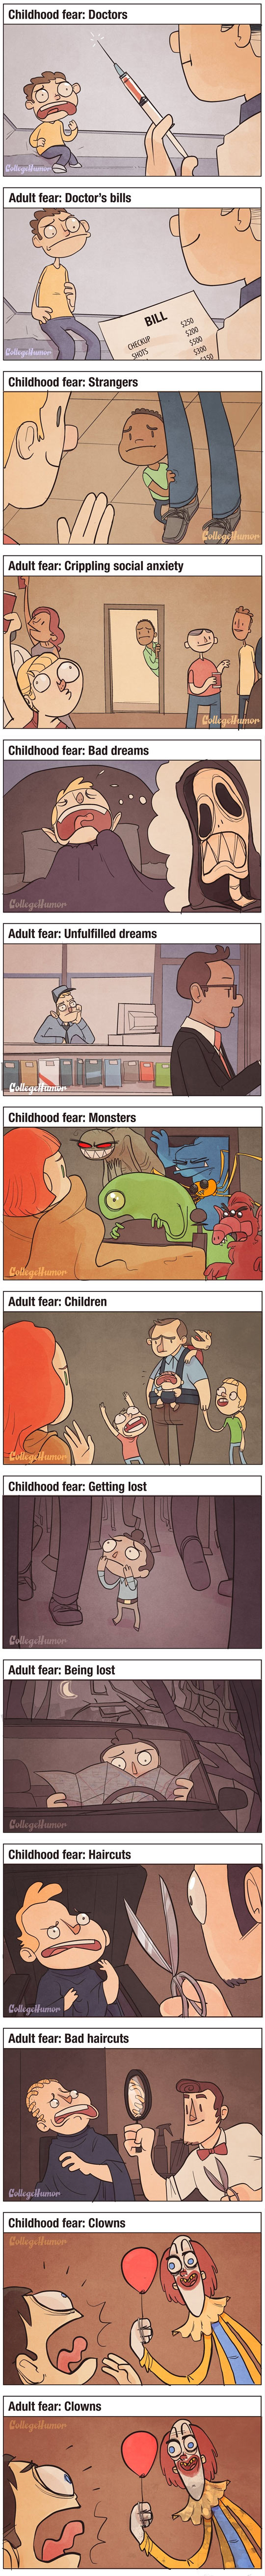 Fears Then And Now